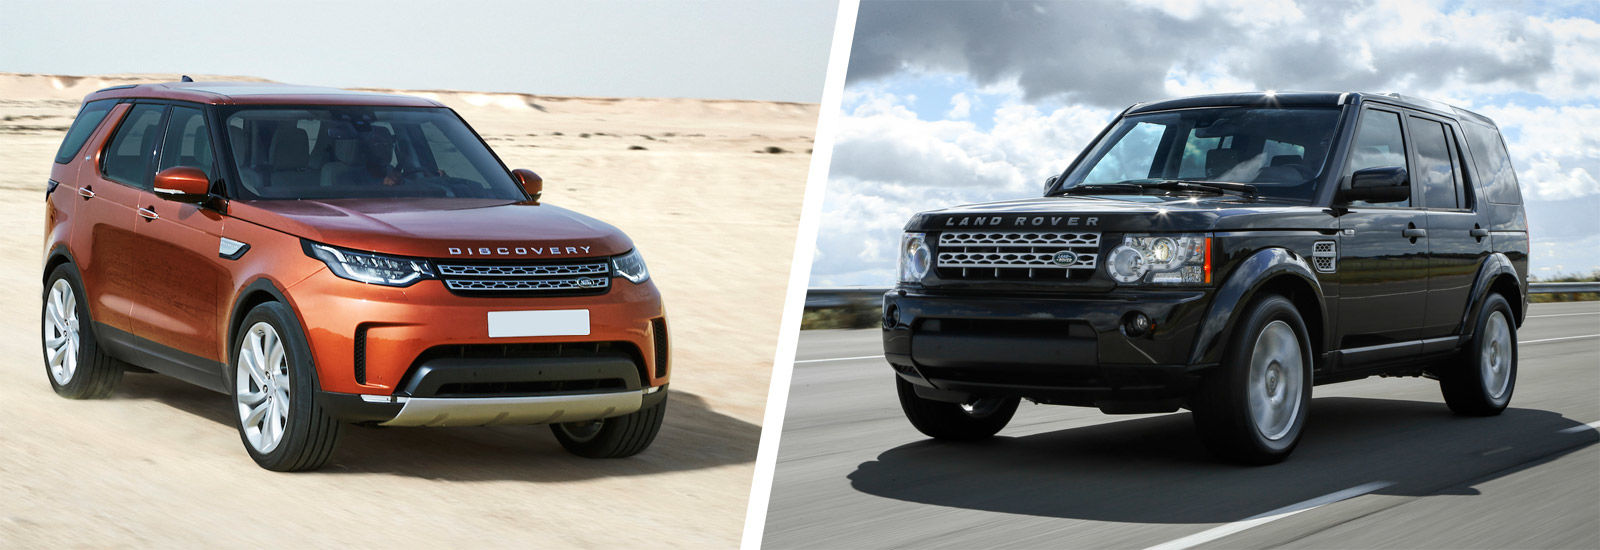 land rover discovery 5 vs discovery 4 old vs new carwow. Black Bedroom Furniture Sets. Home Design Ideas